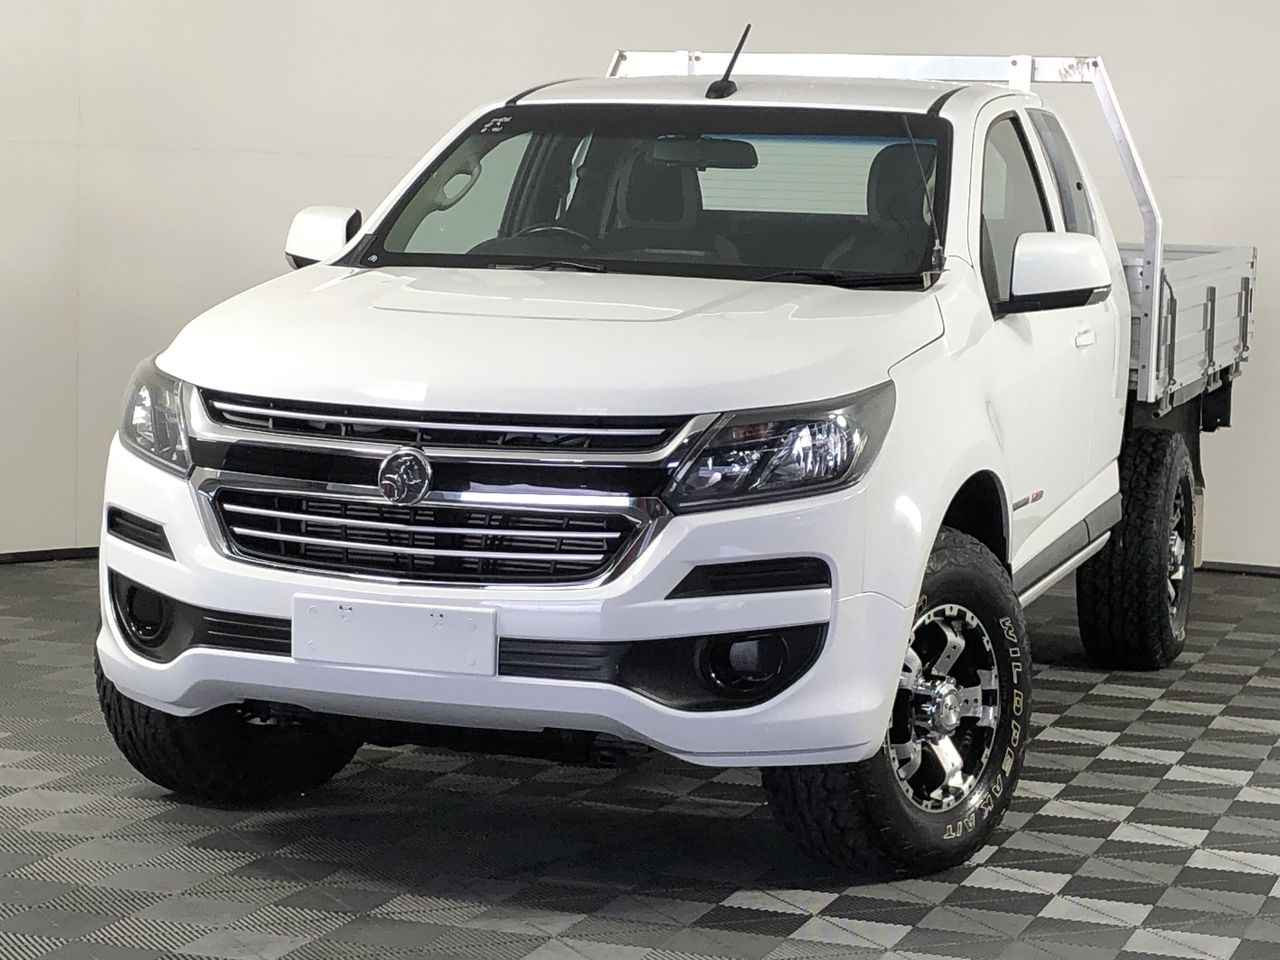 2017 Holden Colorado 4X4 LX RG Turbo Diesel Automatic Extra Cab